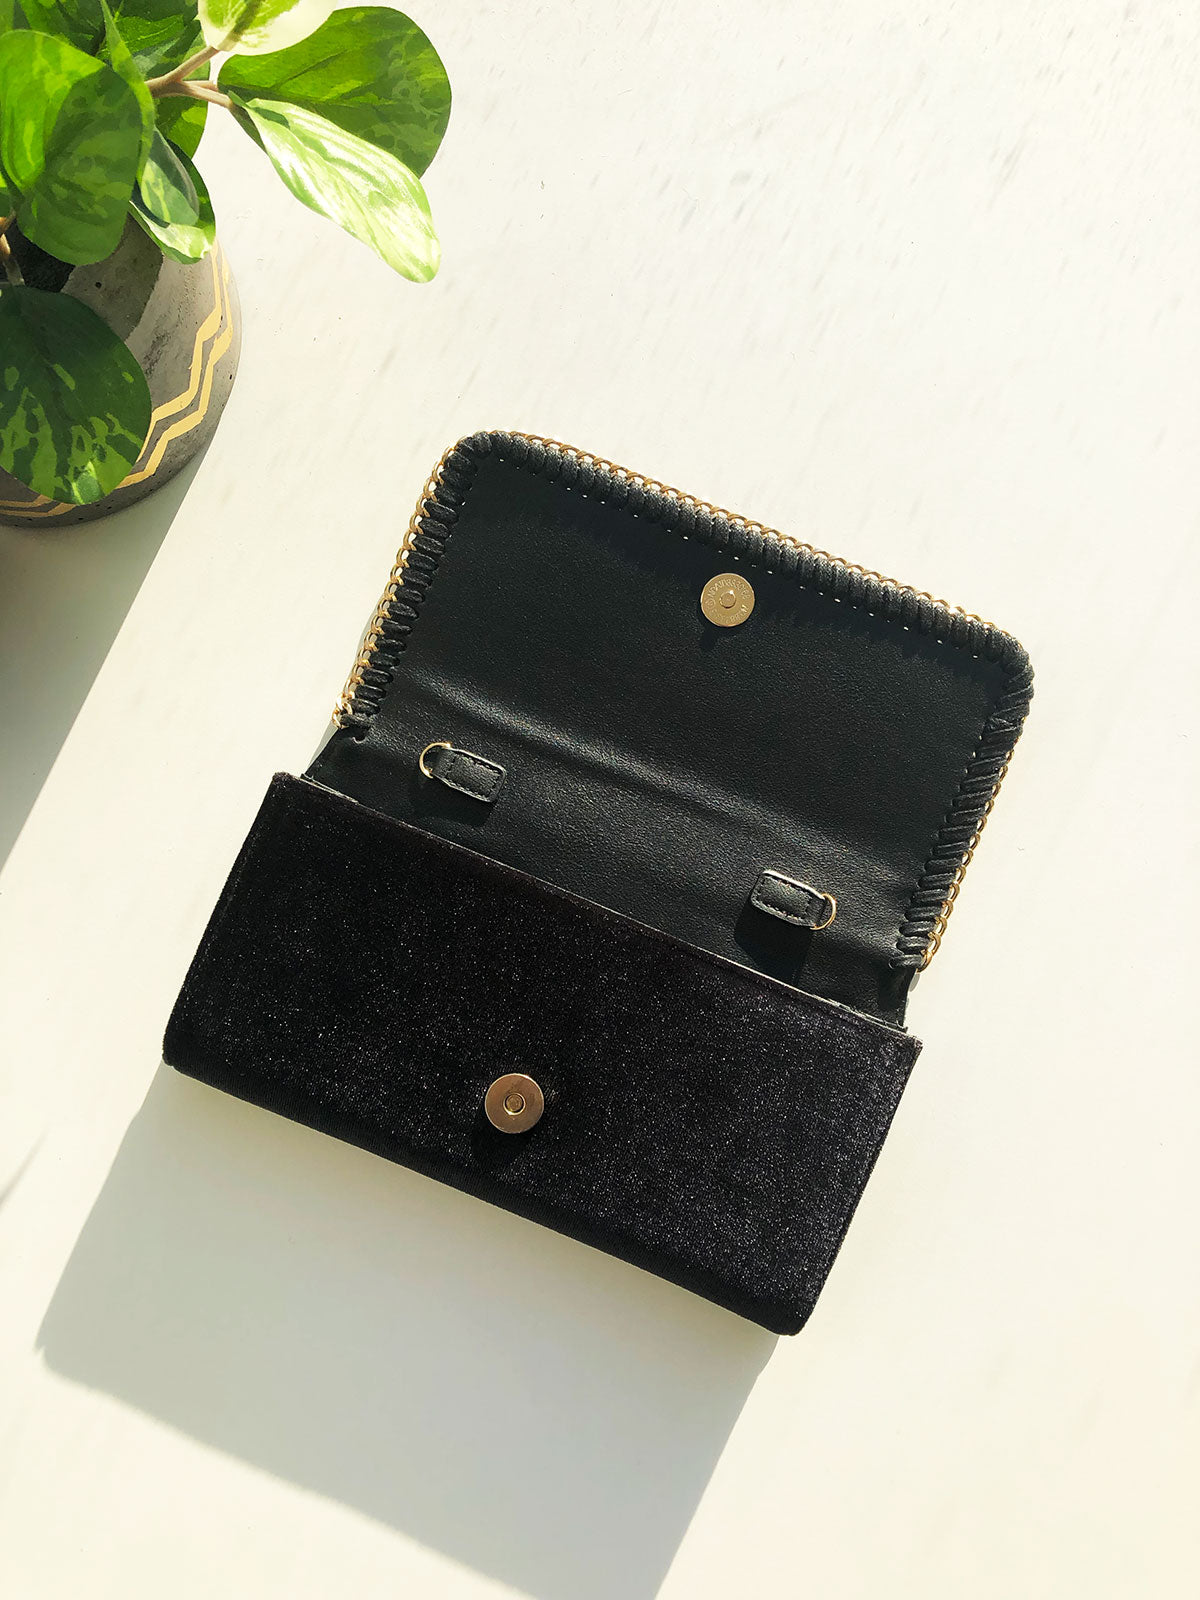 SWEET LOVE BLACK VELVET CLUTCH